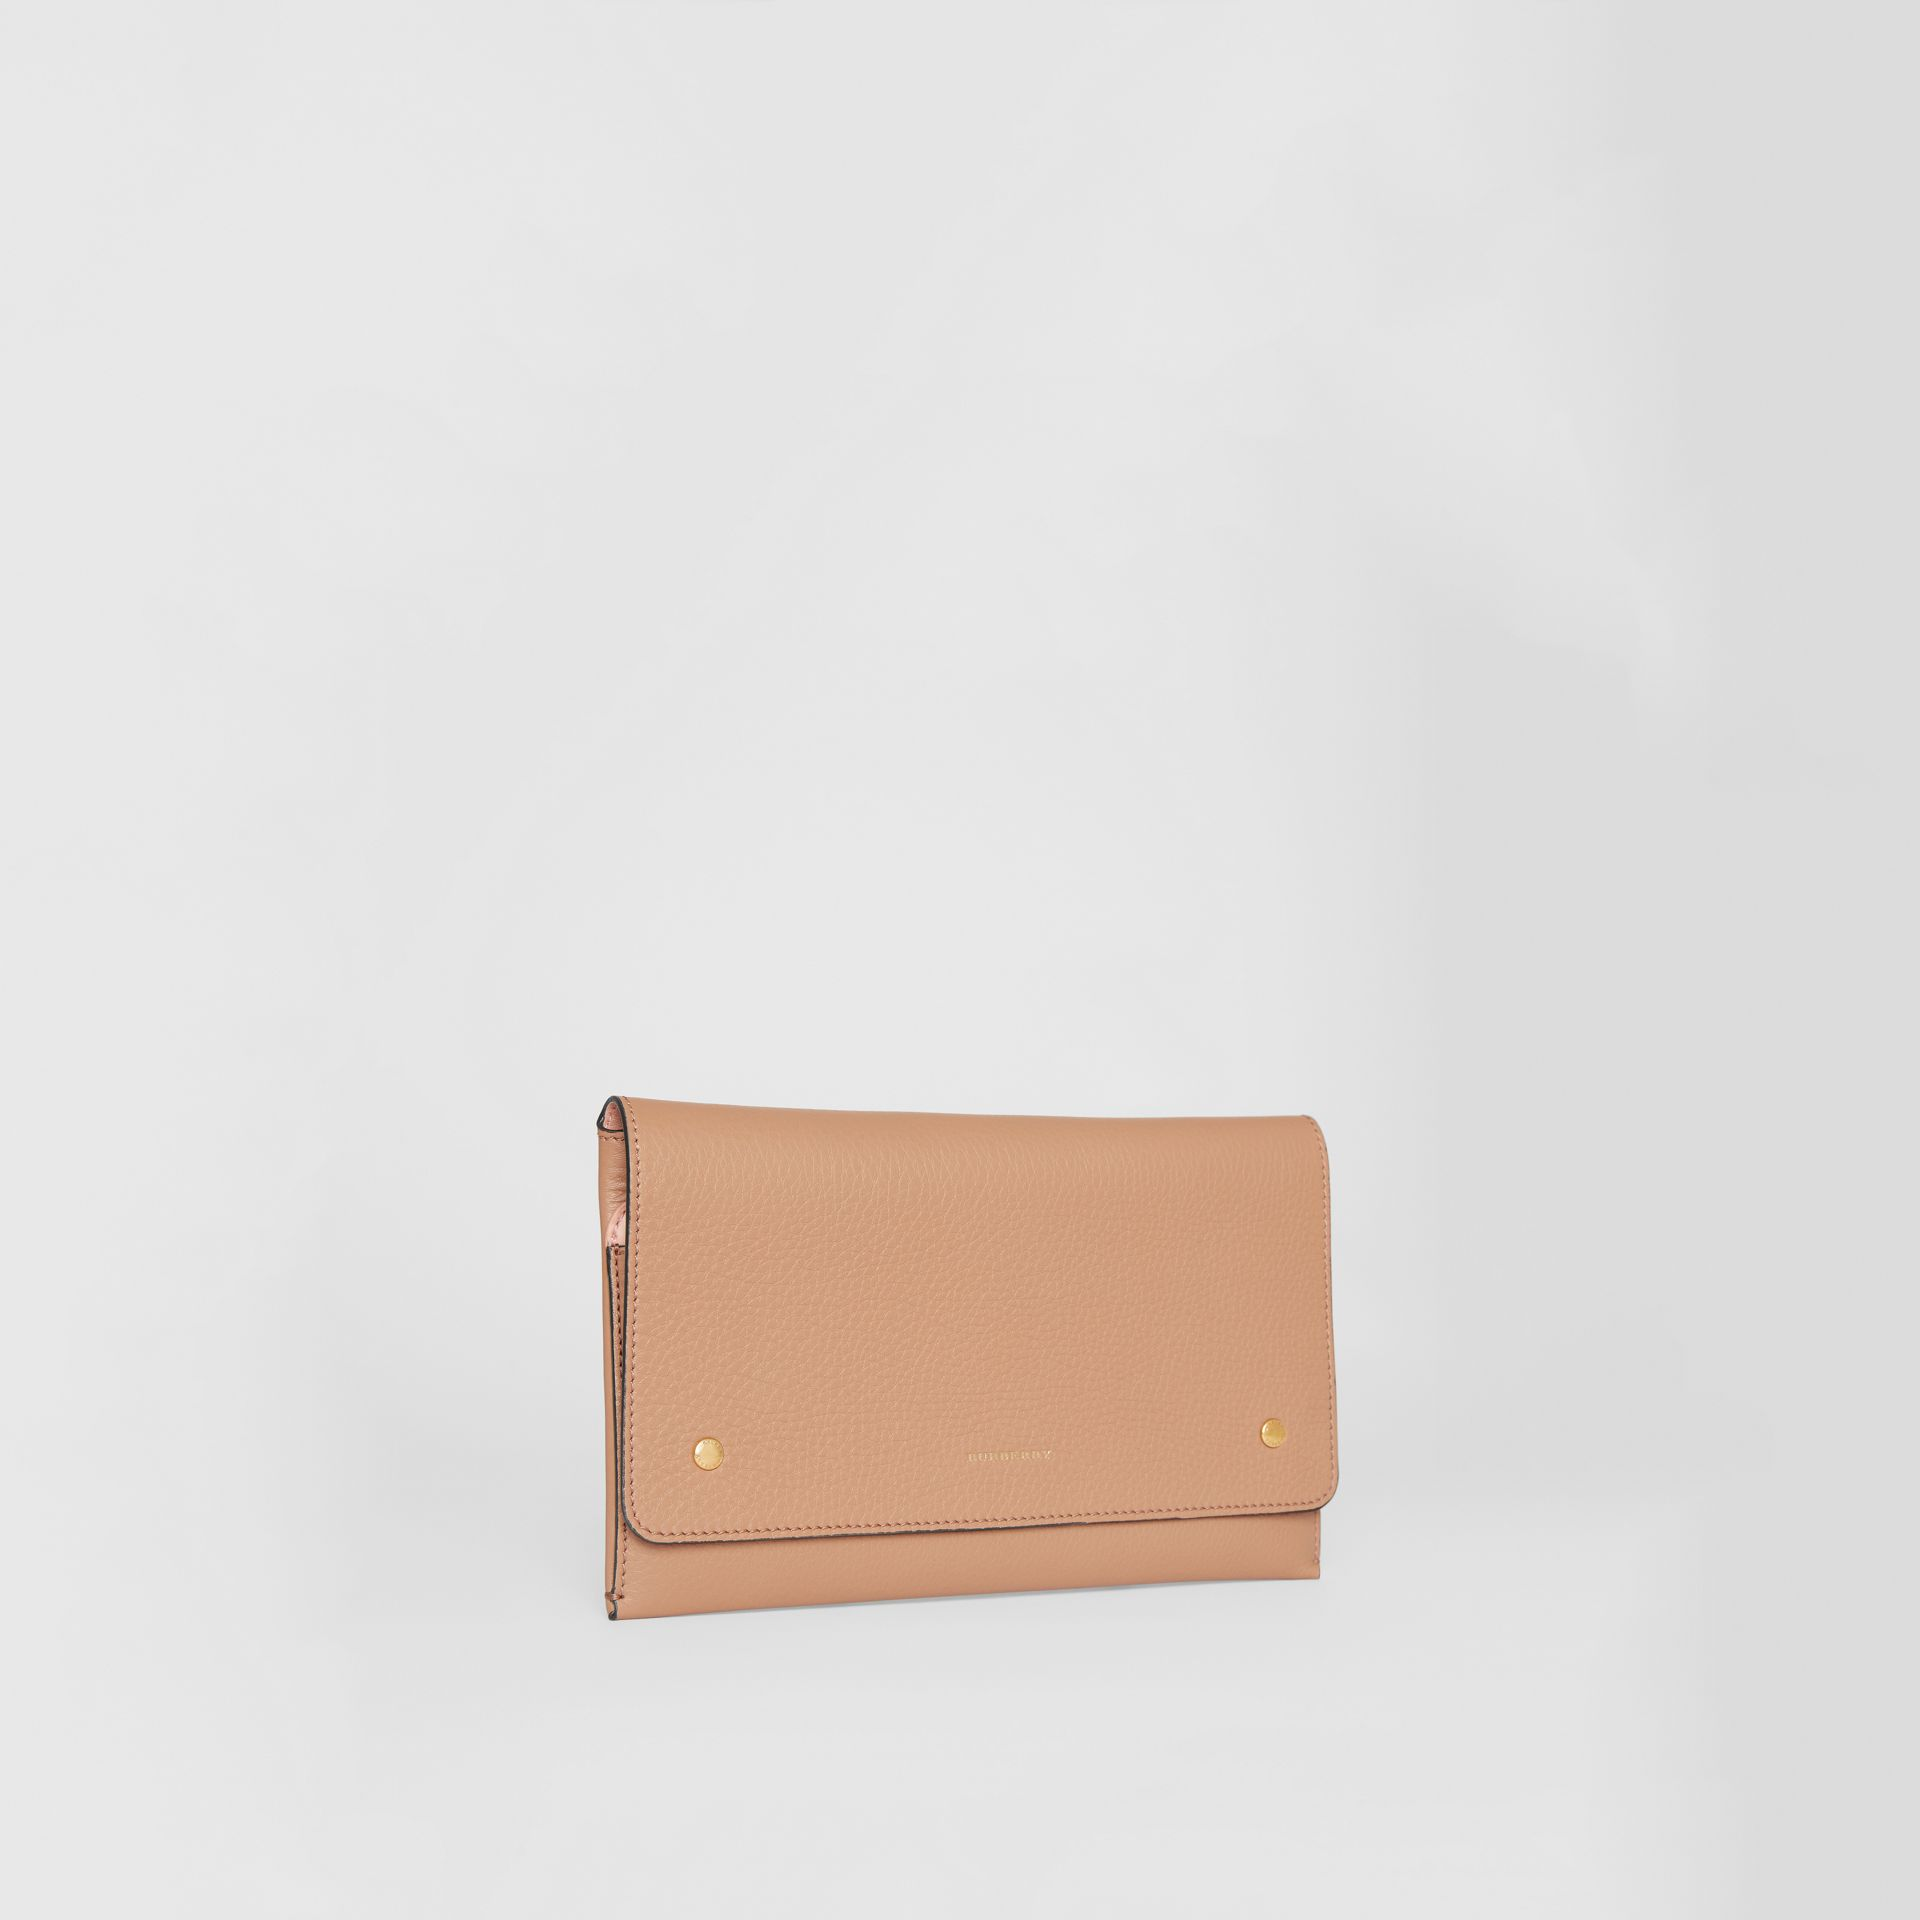 Two-tone Leather Wristlet Clutch in Light Camel - Women | Burberry - gallery image 6